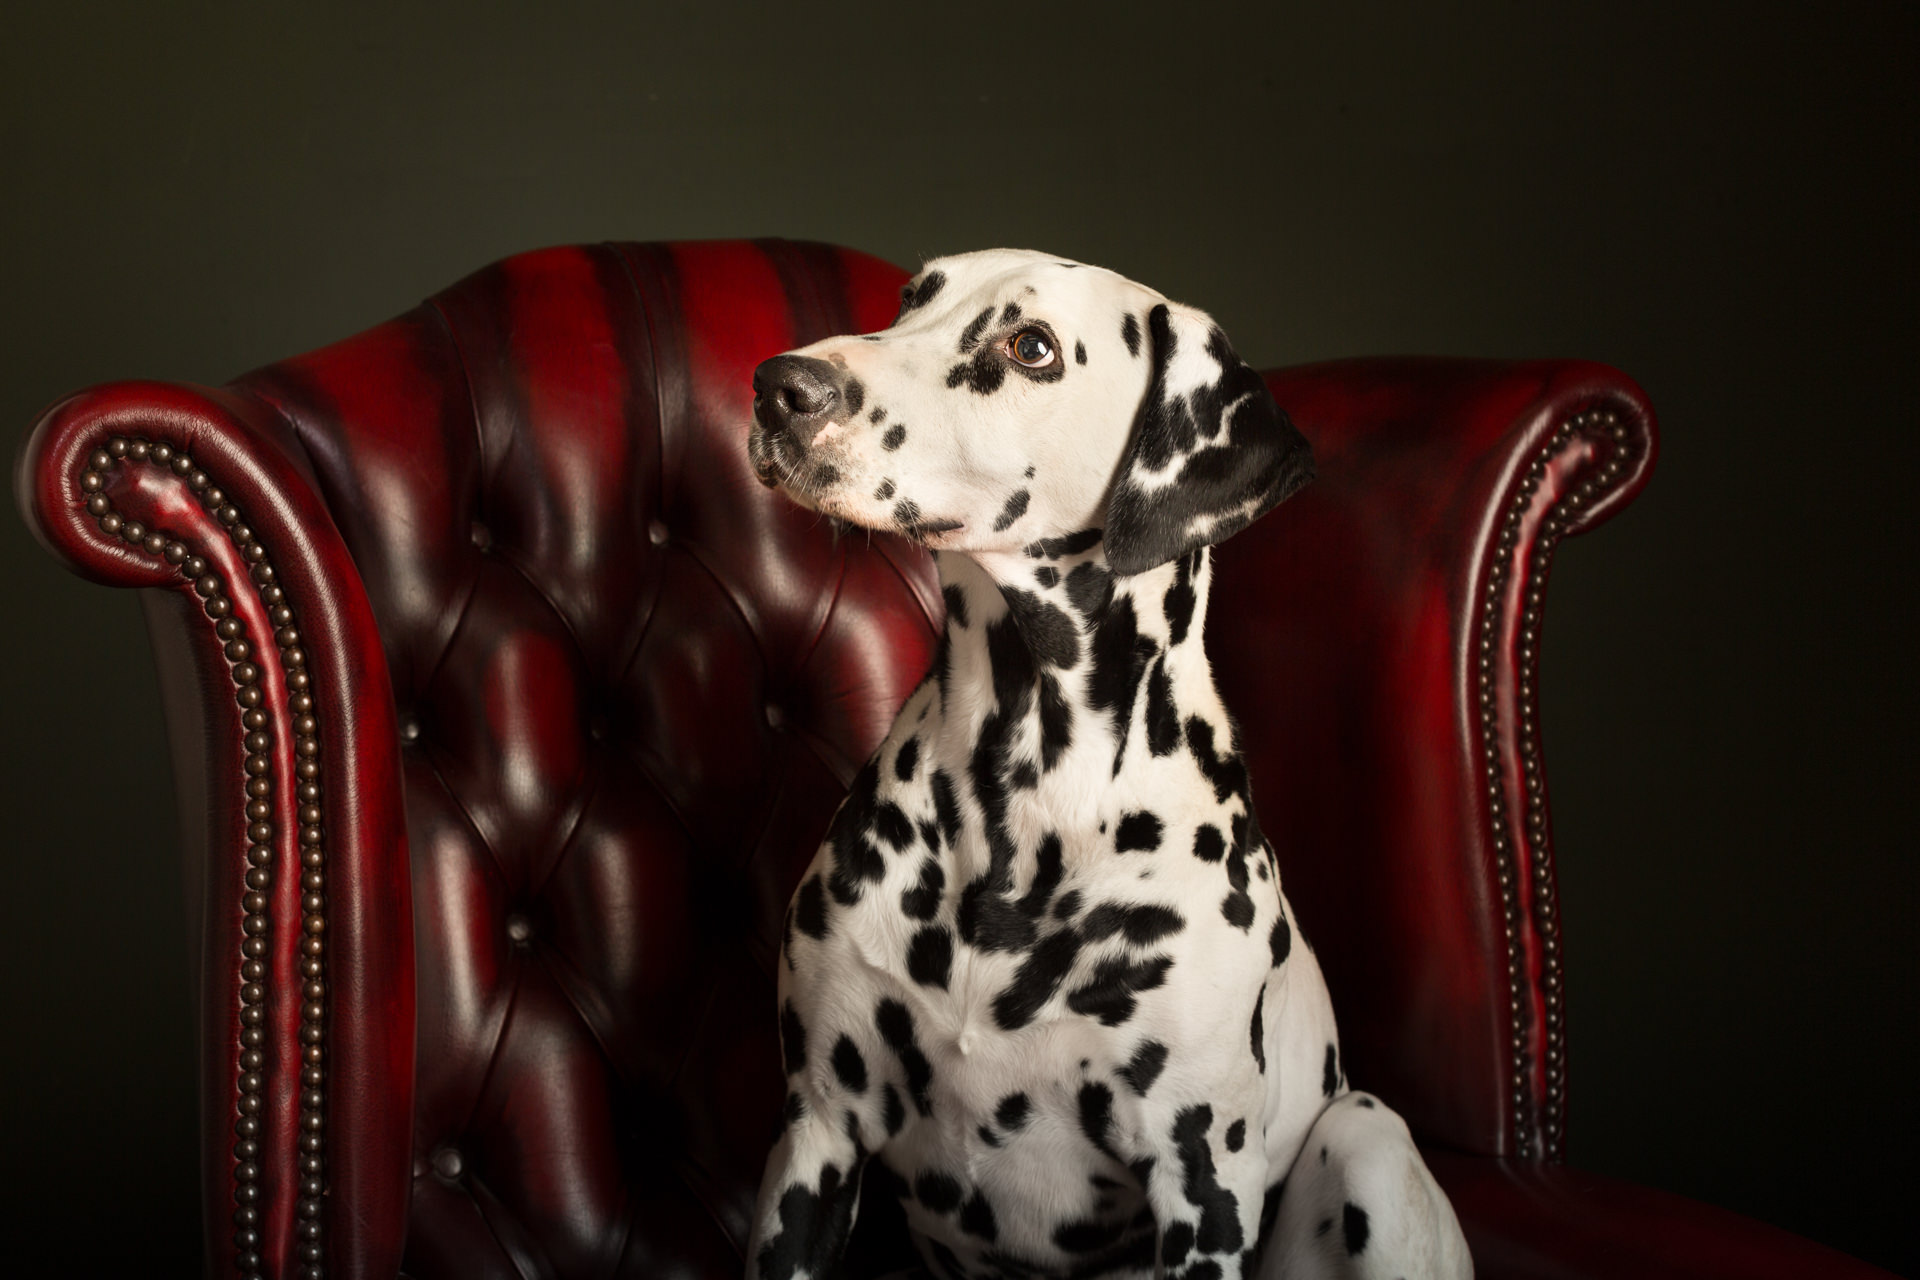 The-Artful-Dog-Studio-Dog-Photographer-5-1